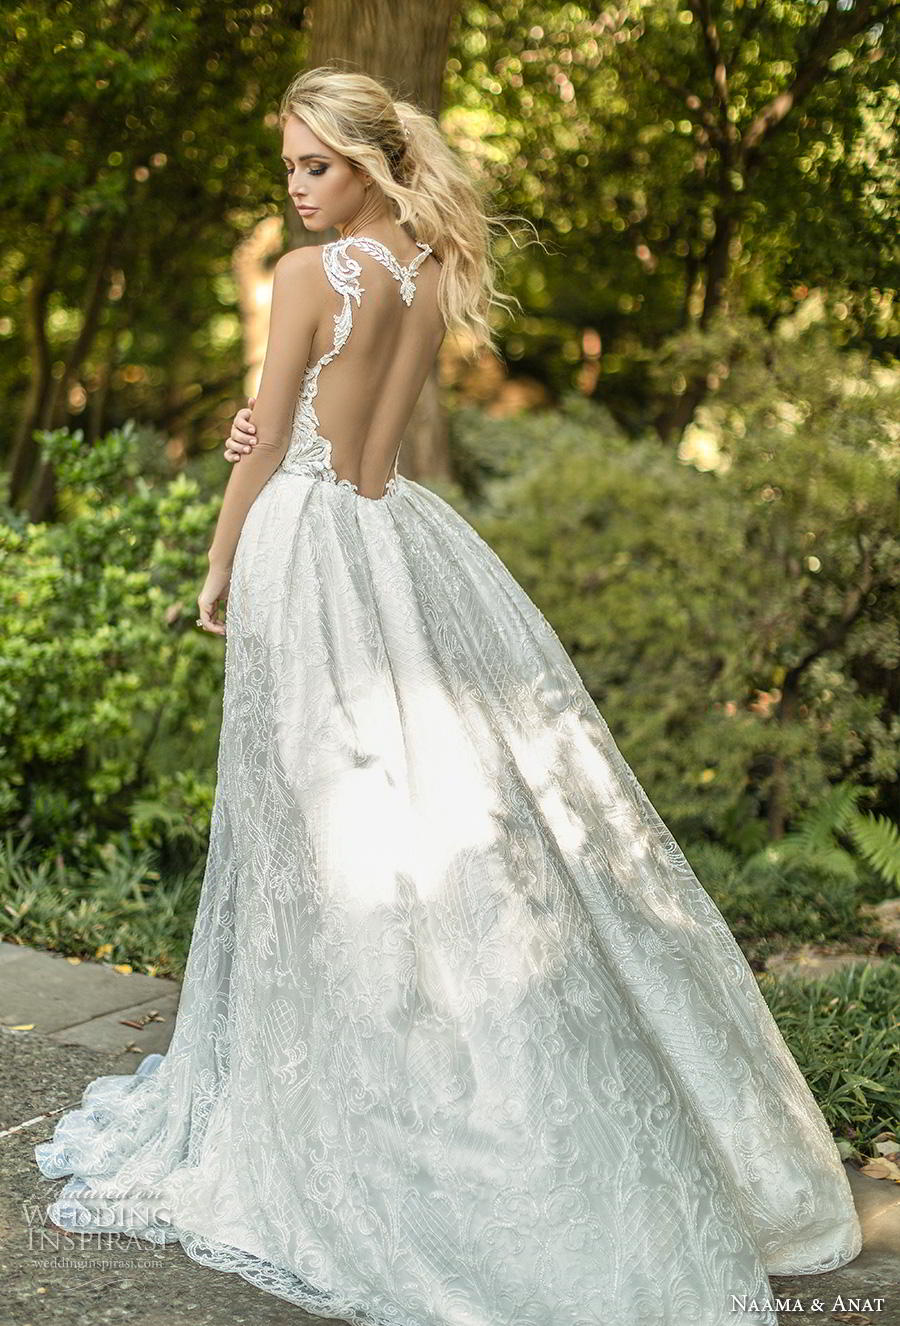 naama anat fall 2019 couture bridal sleeveless halter neck keyhole bodice full embellishment elegant sexy fit and flare wedding dress a  line overskirt low open back chapel train (6) bv